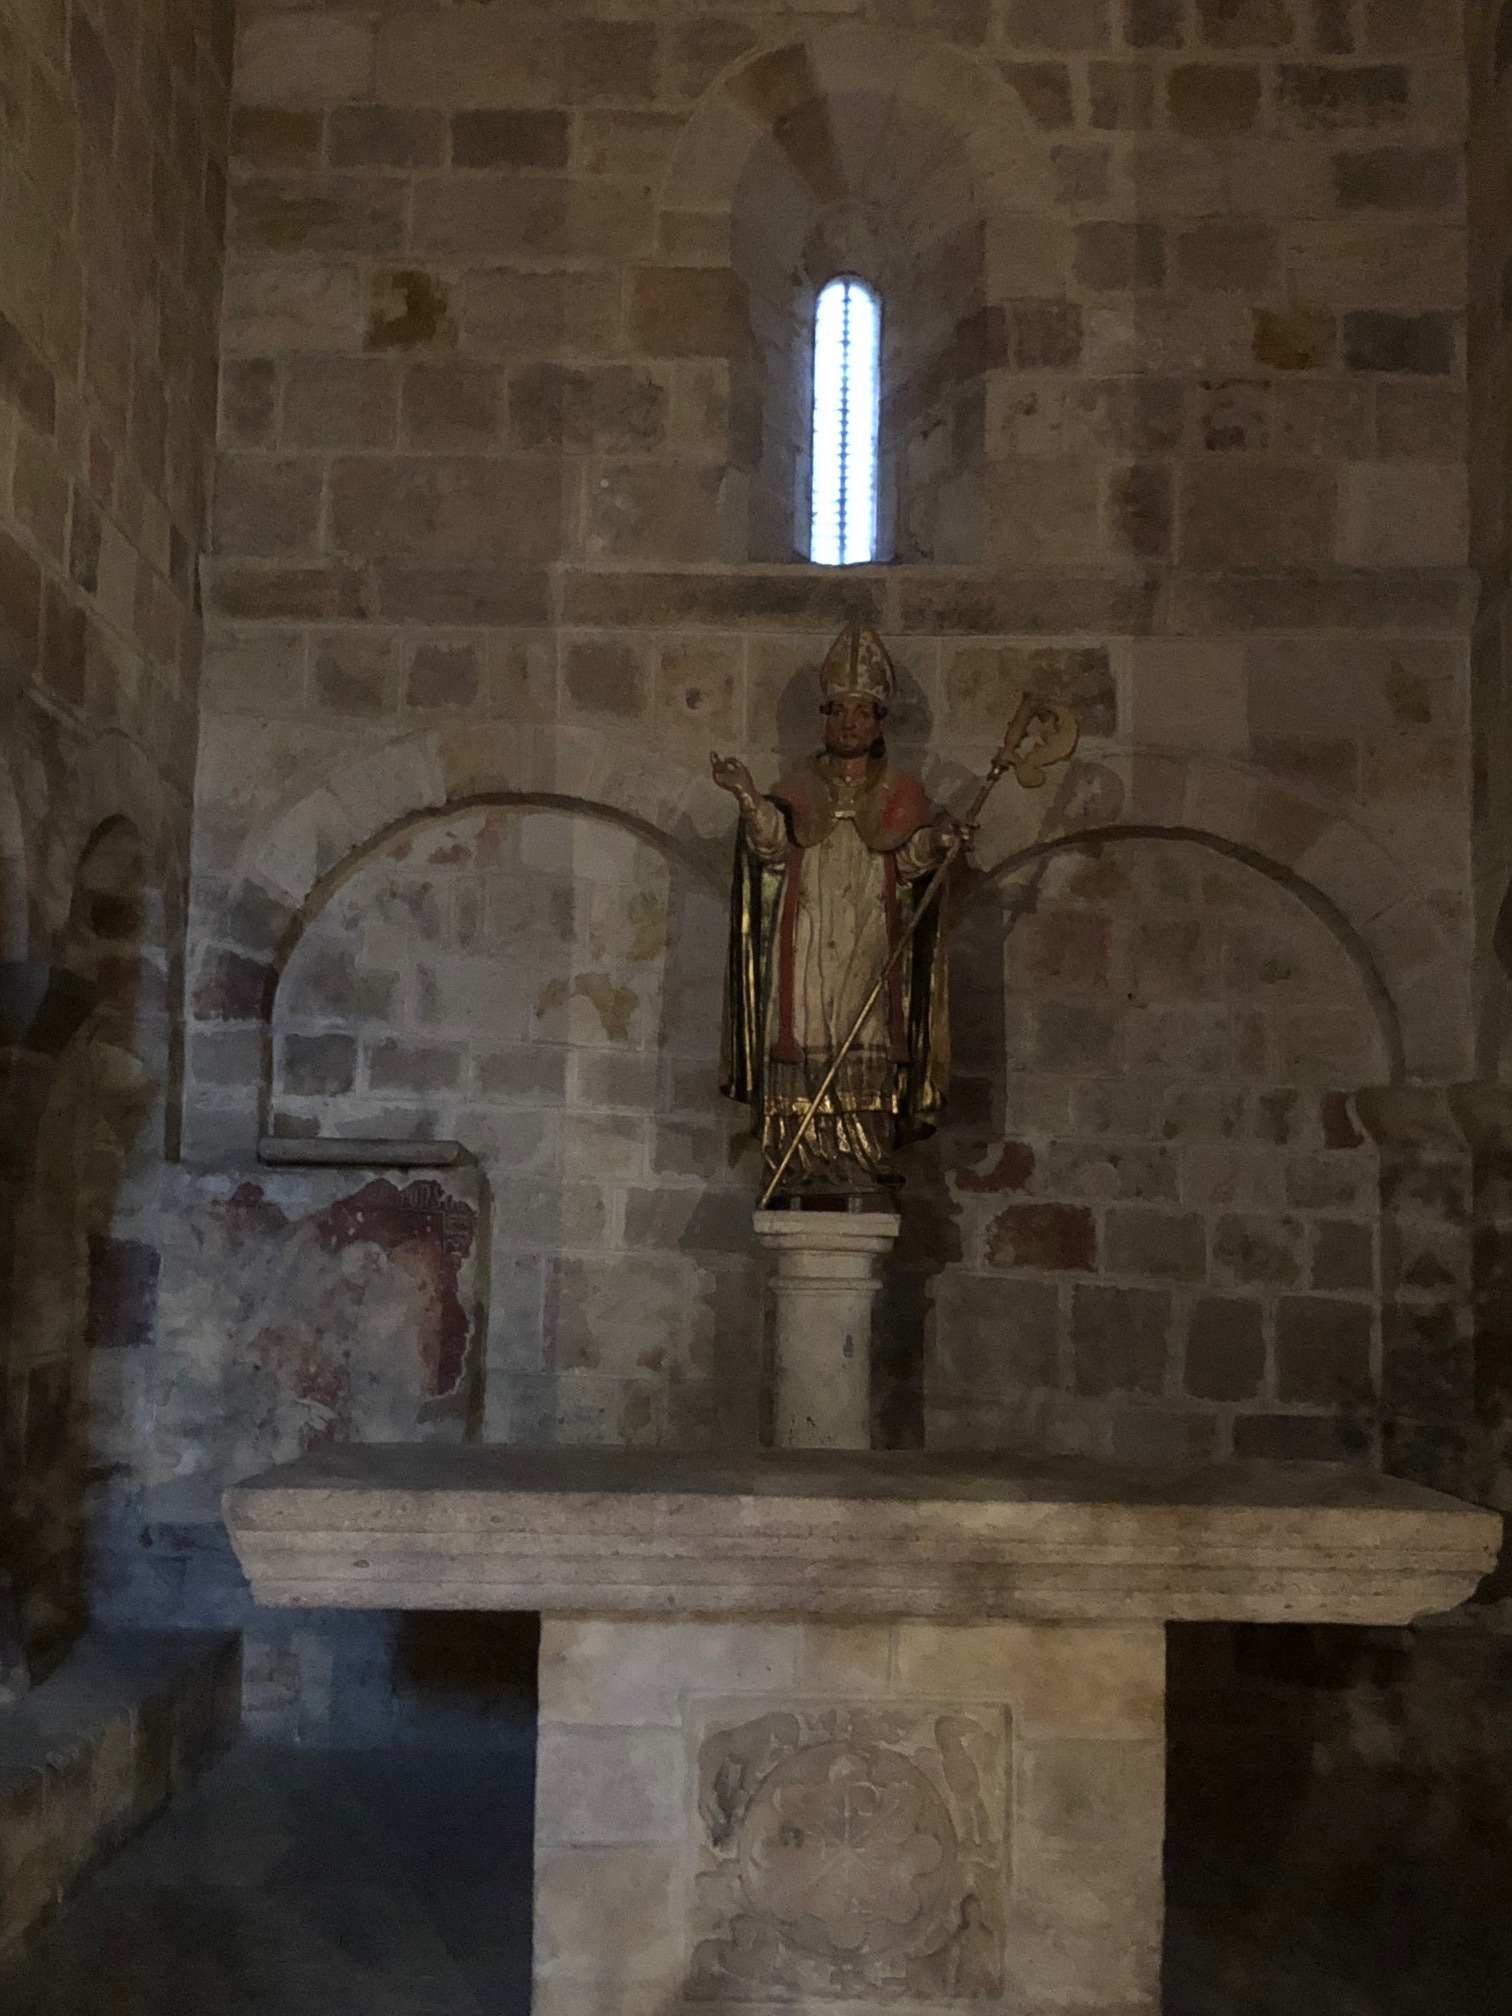 Interior of the Church emptied except for the statue of S Cipriano